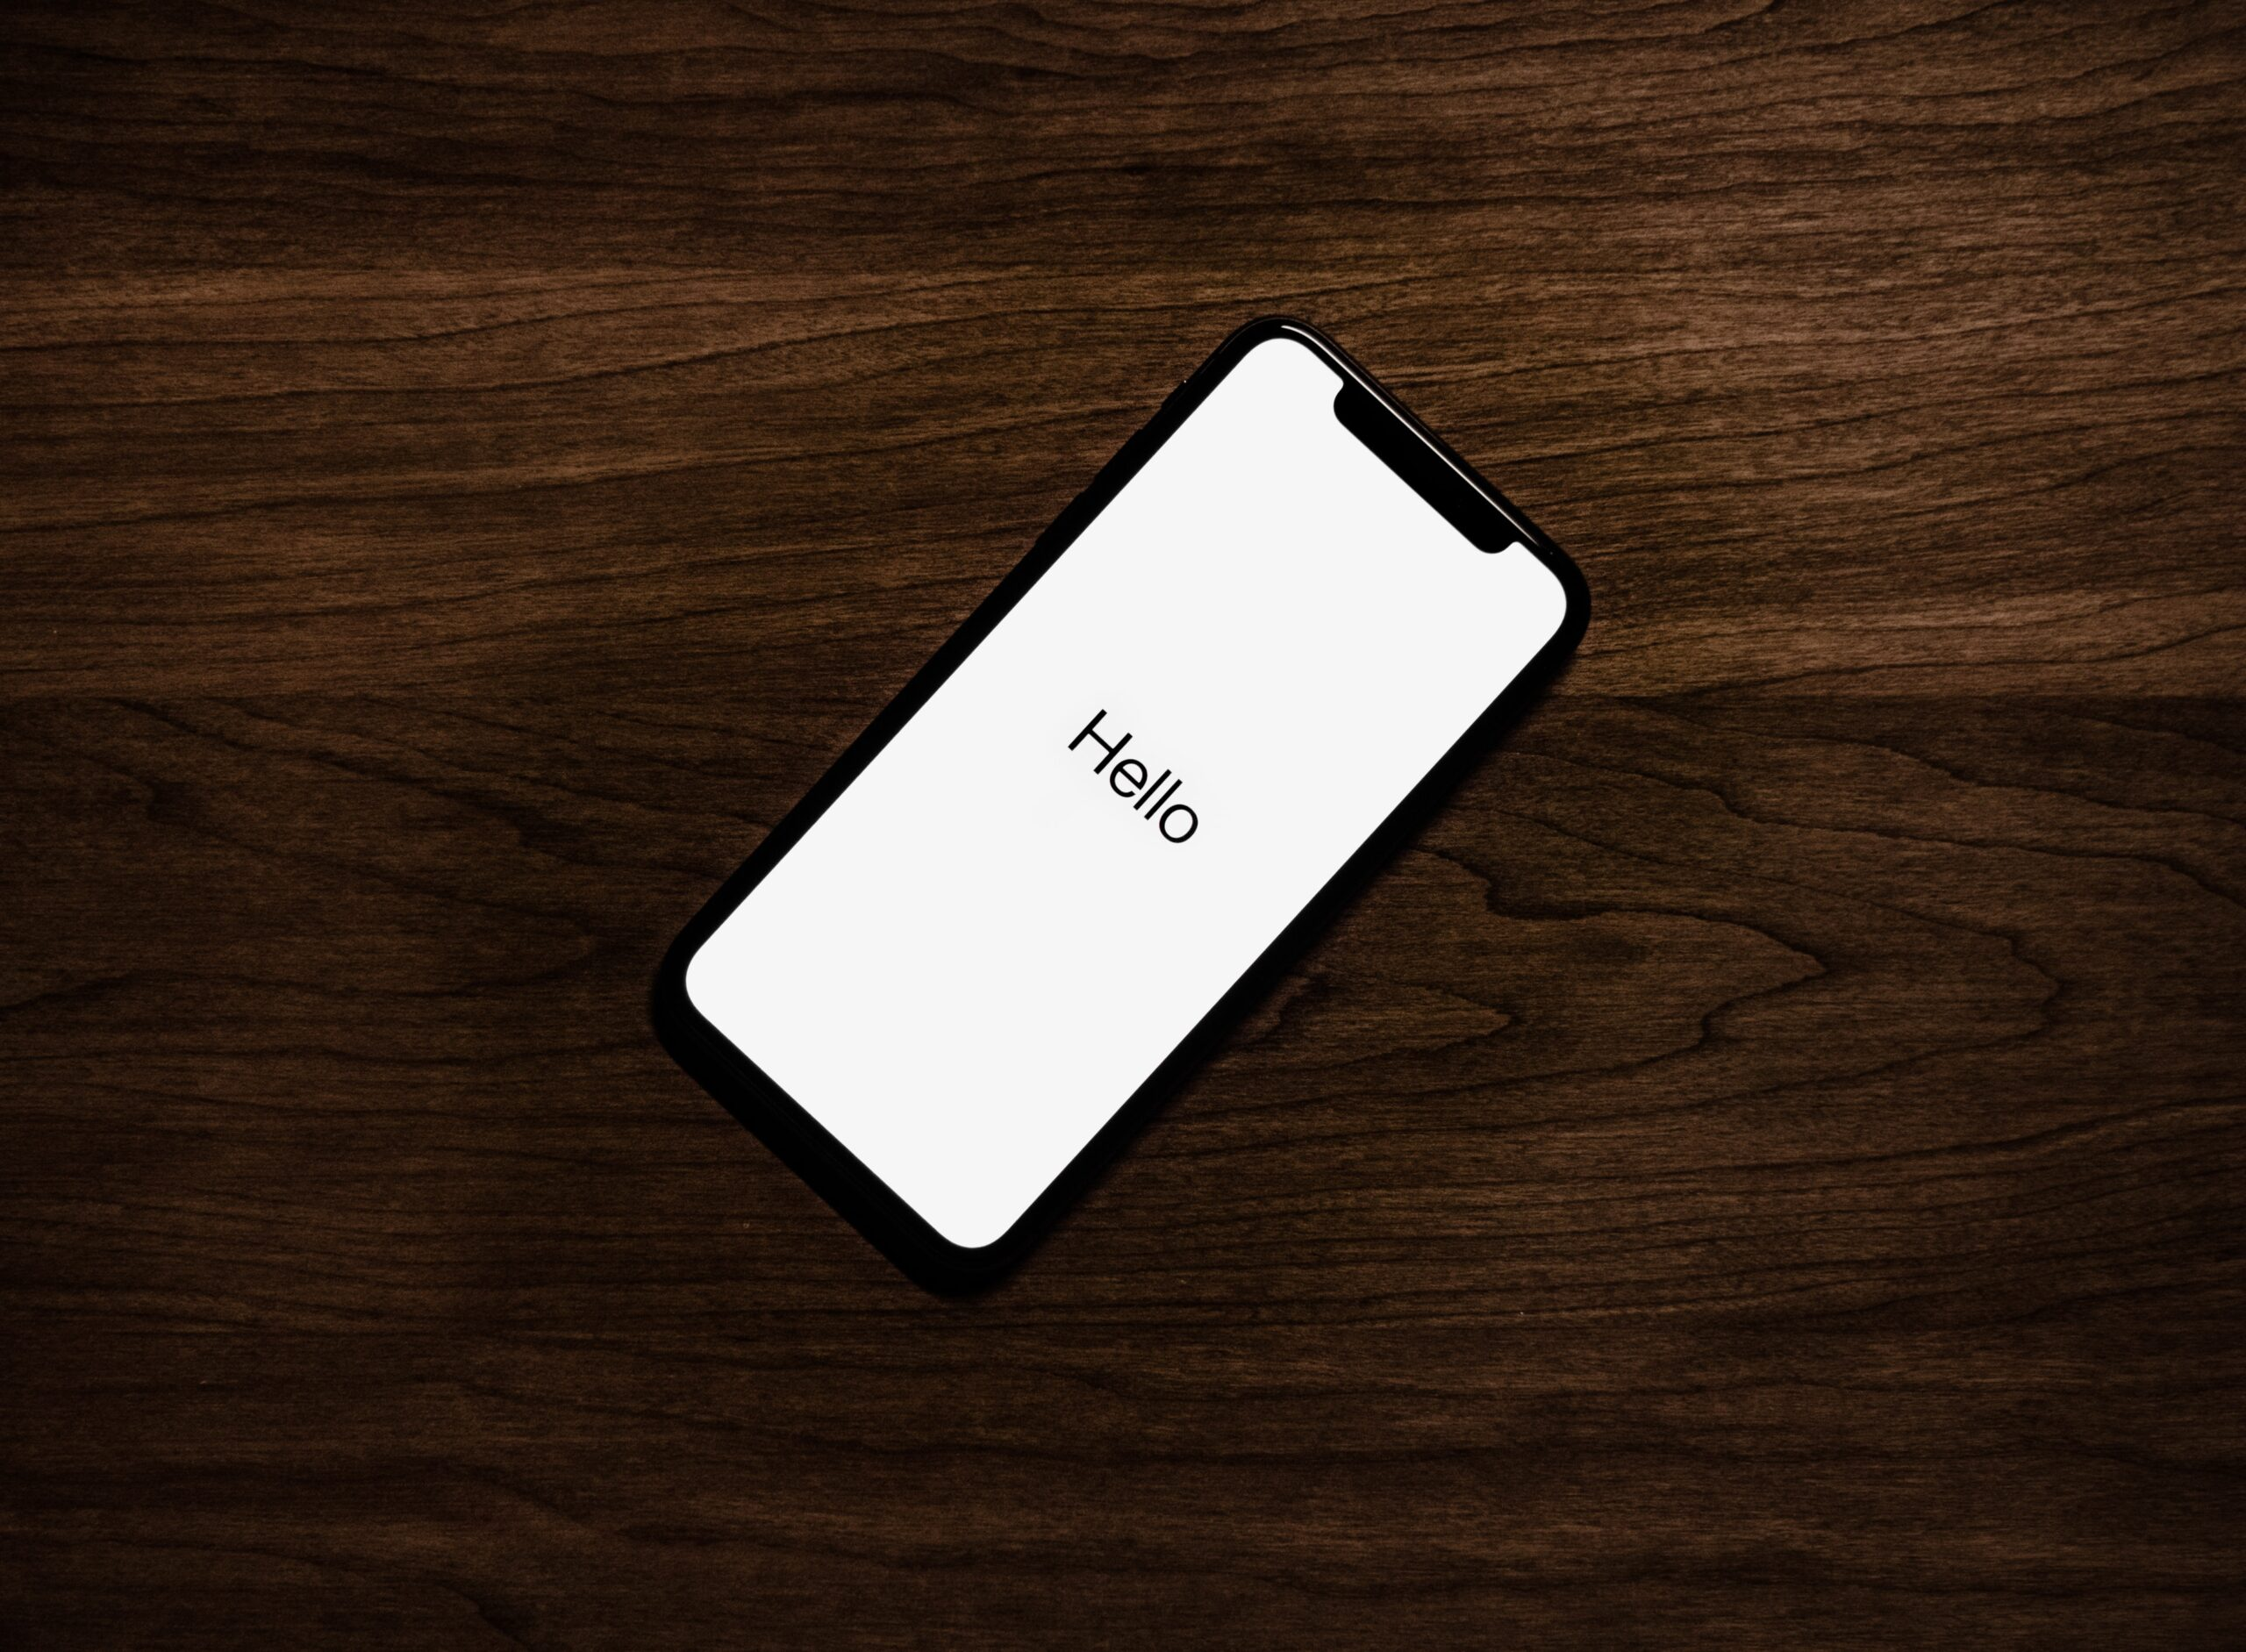 iphone on table with hello message